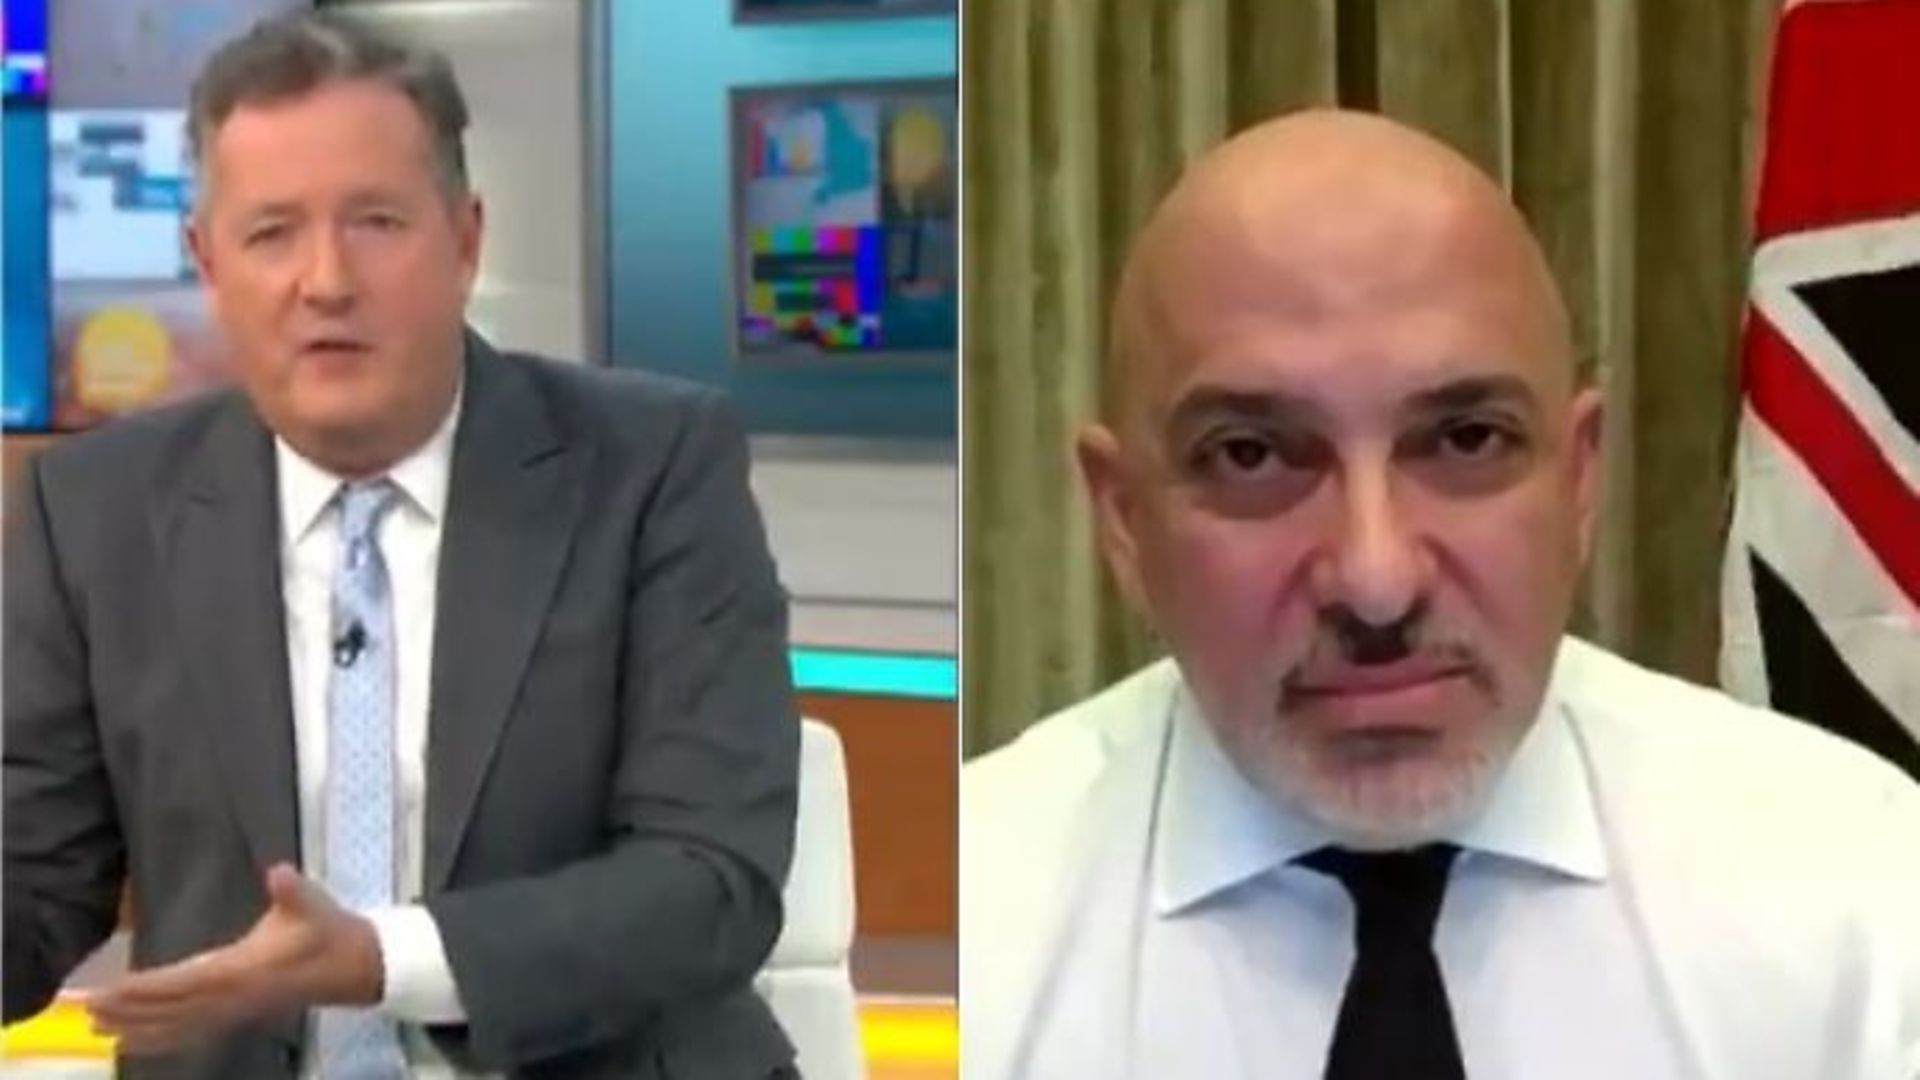 Nadhim Zahawi is challenged by Piers Morgan on Good Morning Britain - Credit: ITV